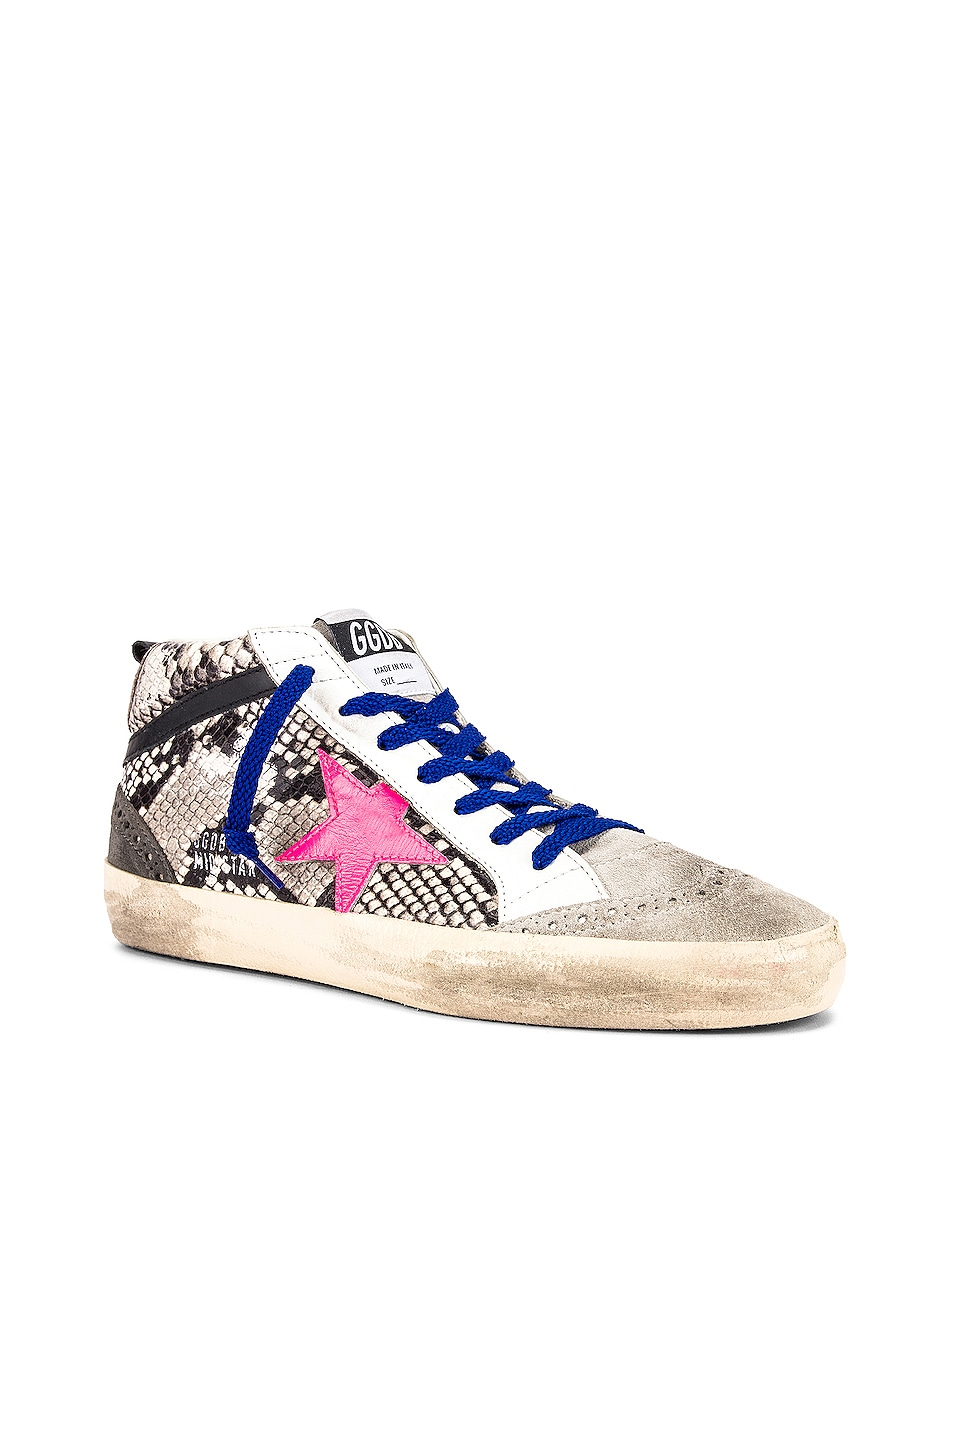 Image 2 of Golden Goose Mid Star Sneaker in Rock Snake & Fuchsia